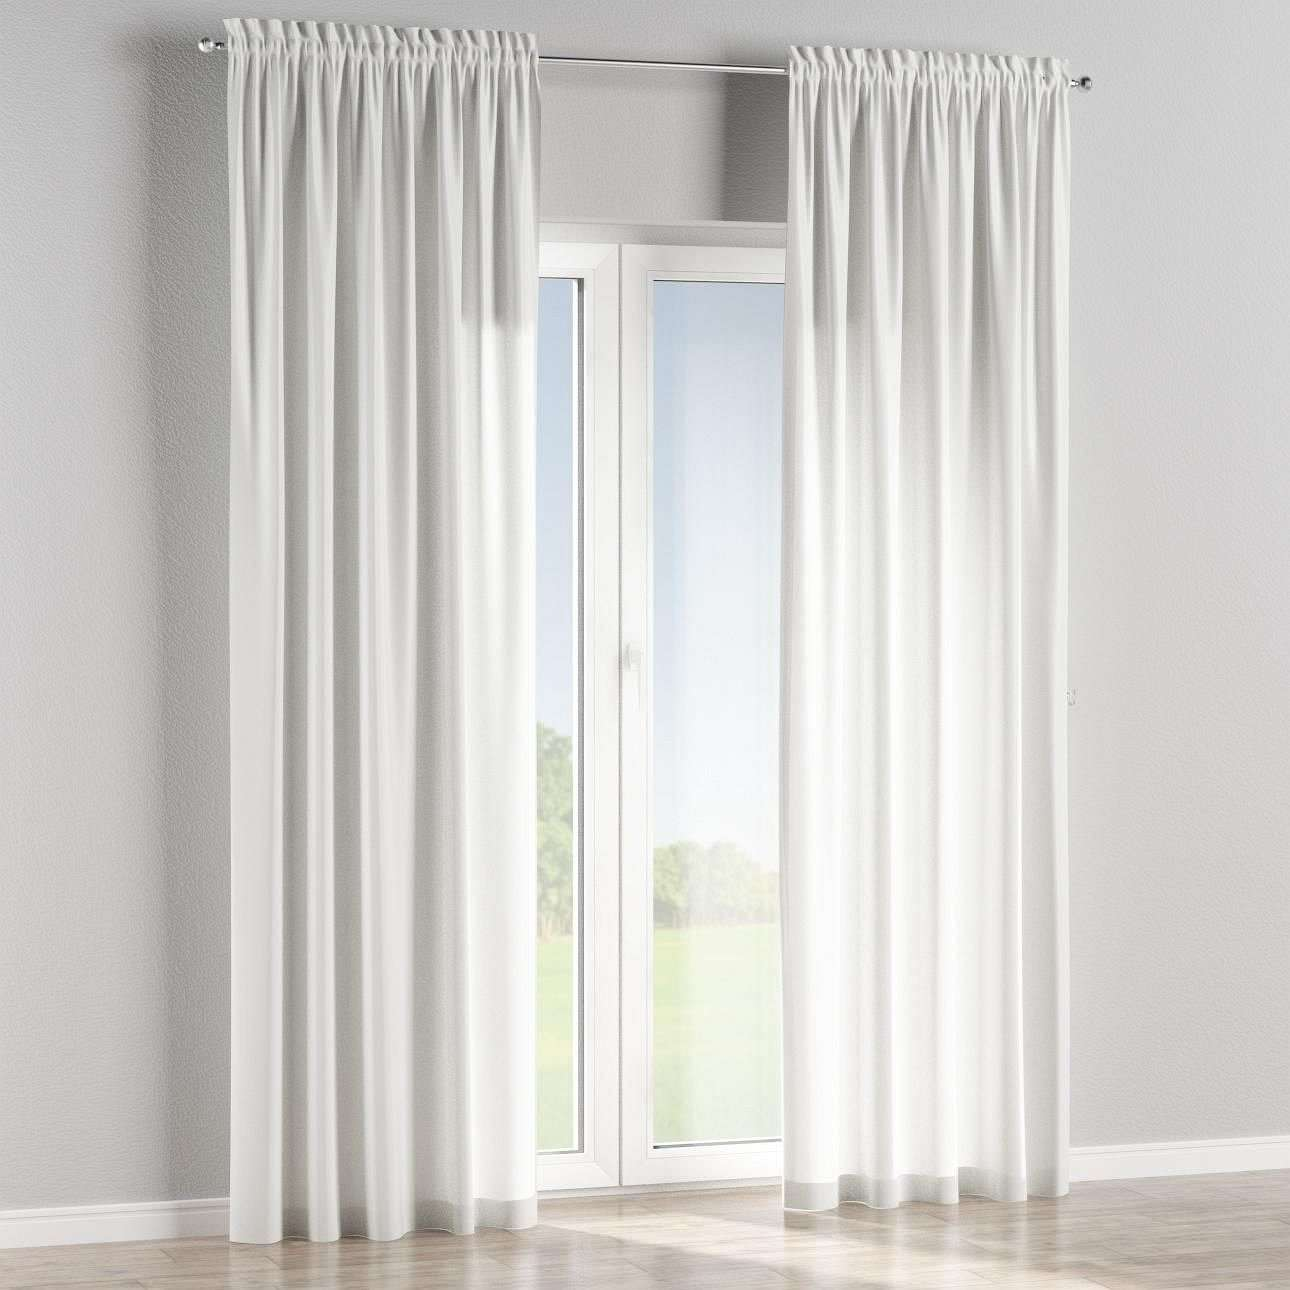 Slot and frill curtains in collection Milano, fabric: 150-37